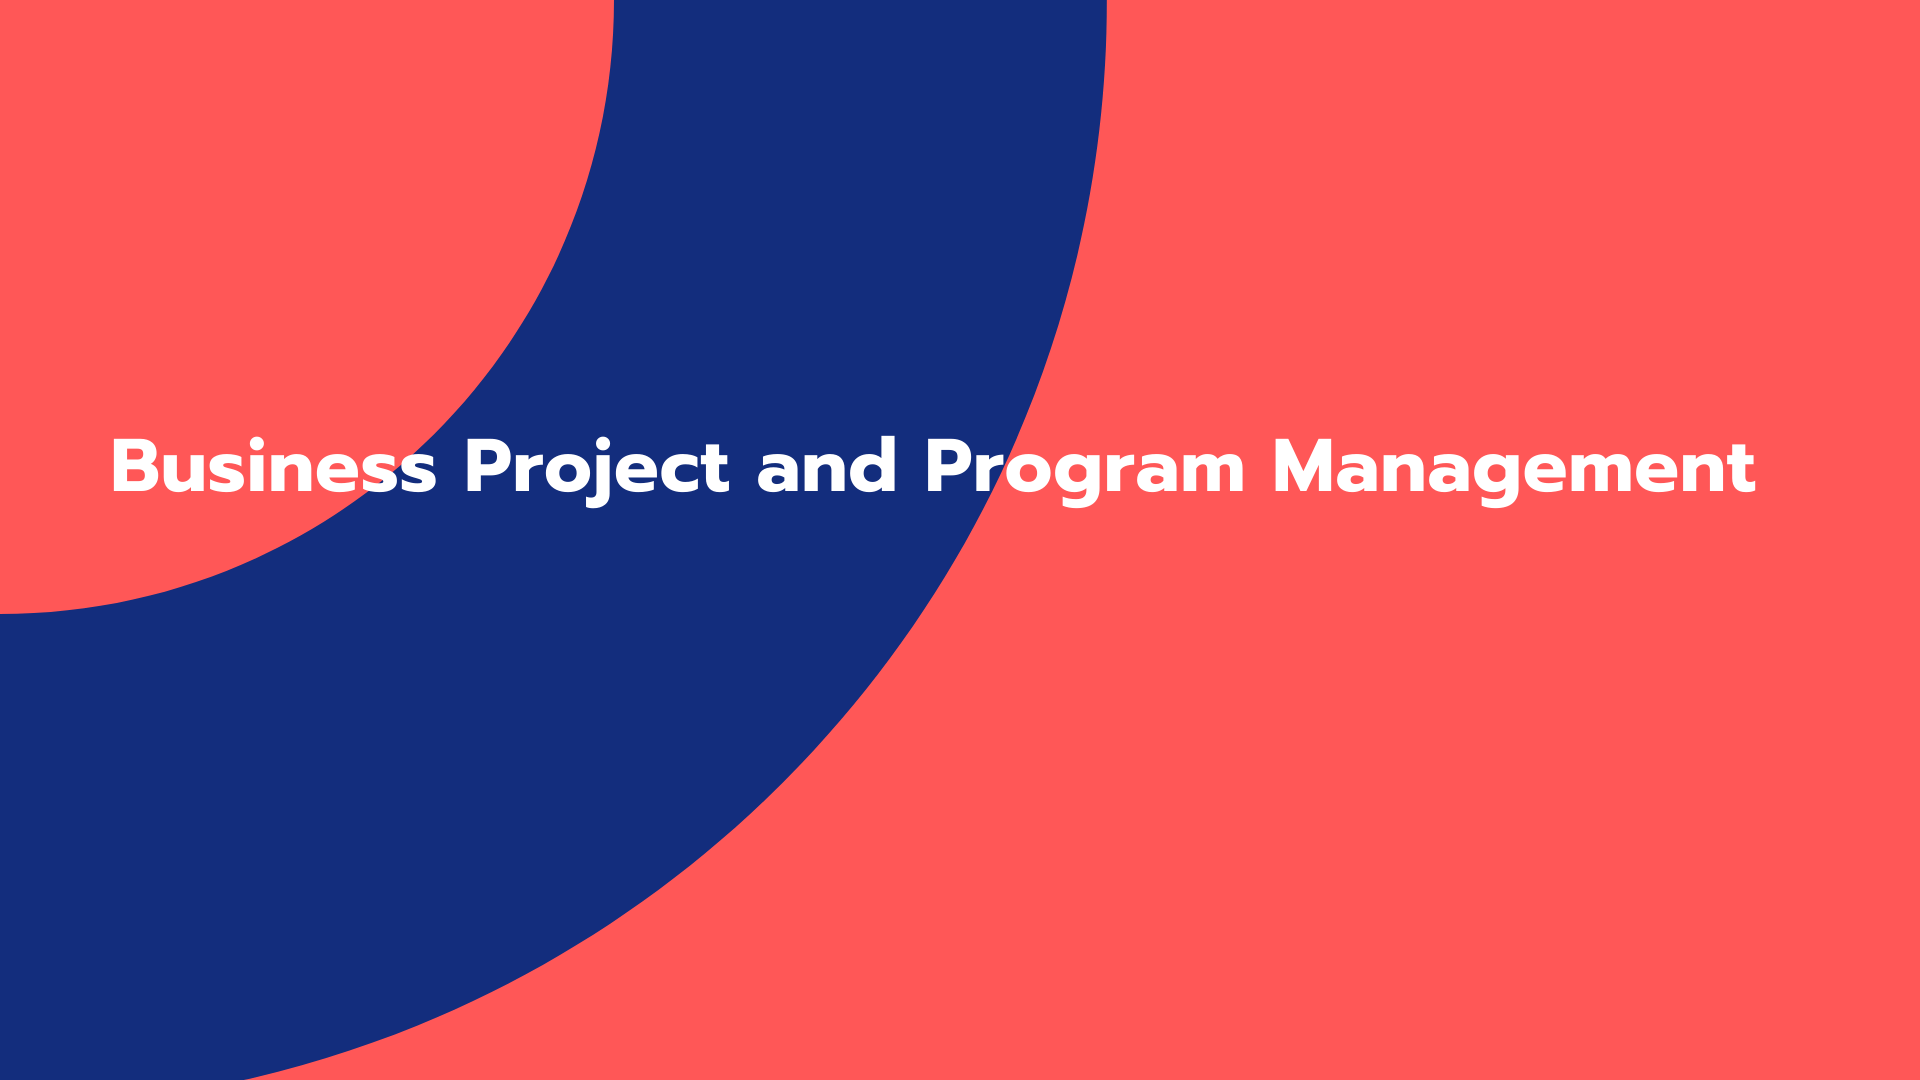 Business Project and Program Management